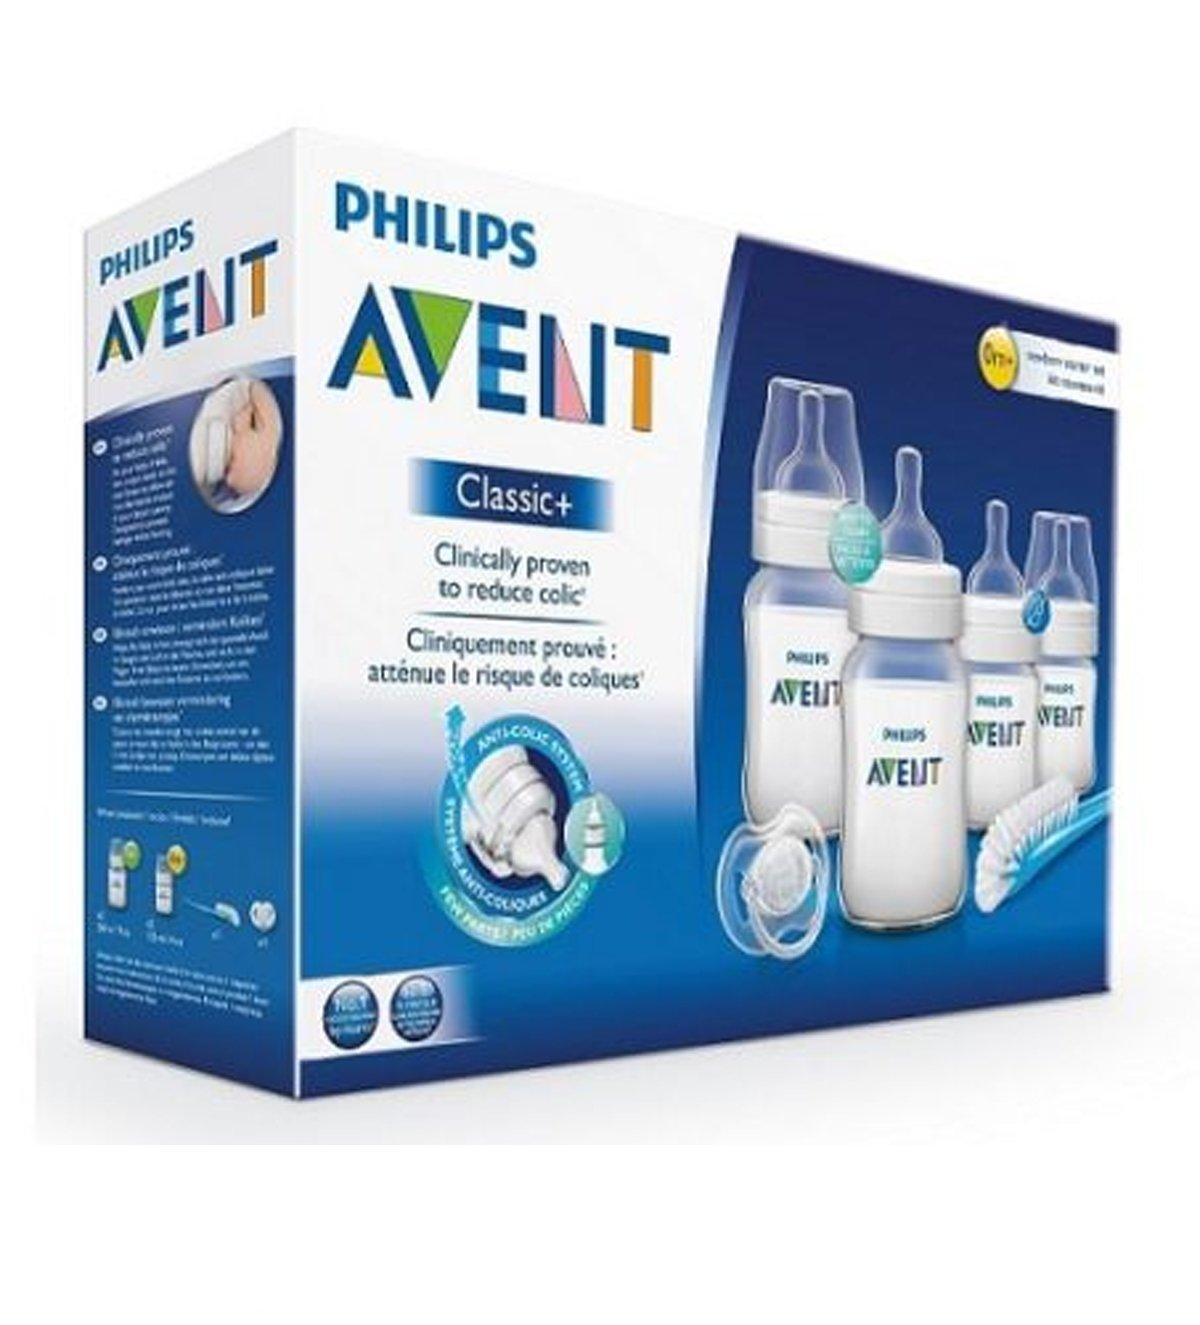 Philips Avent SCD371 Newborn baby Bottle Kit 4 bottles Starter Set Classic